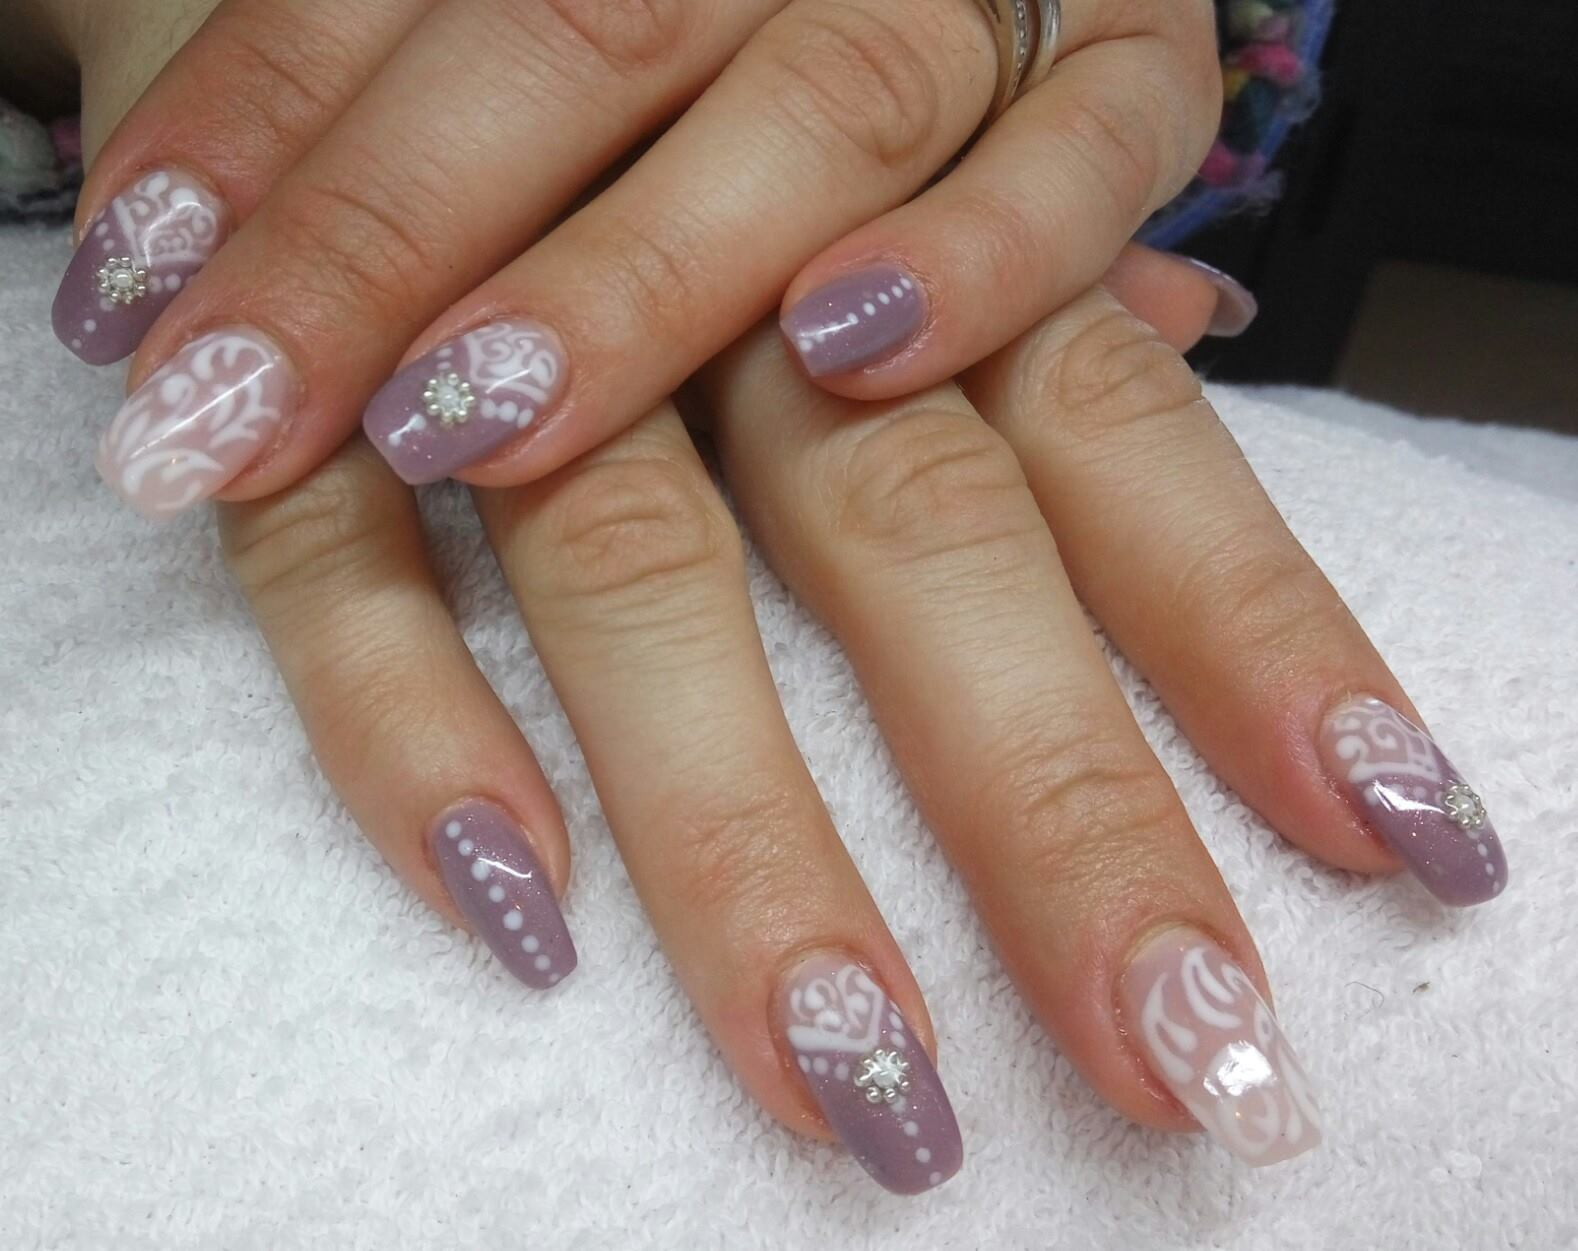 Jade's - nails, accessories & more - Nail Technicians